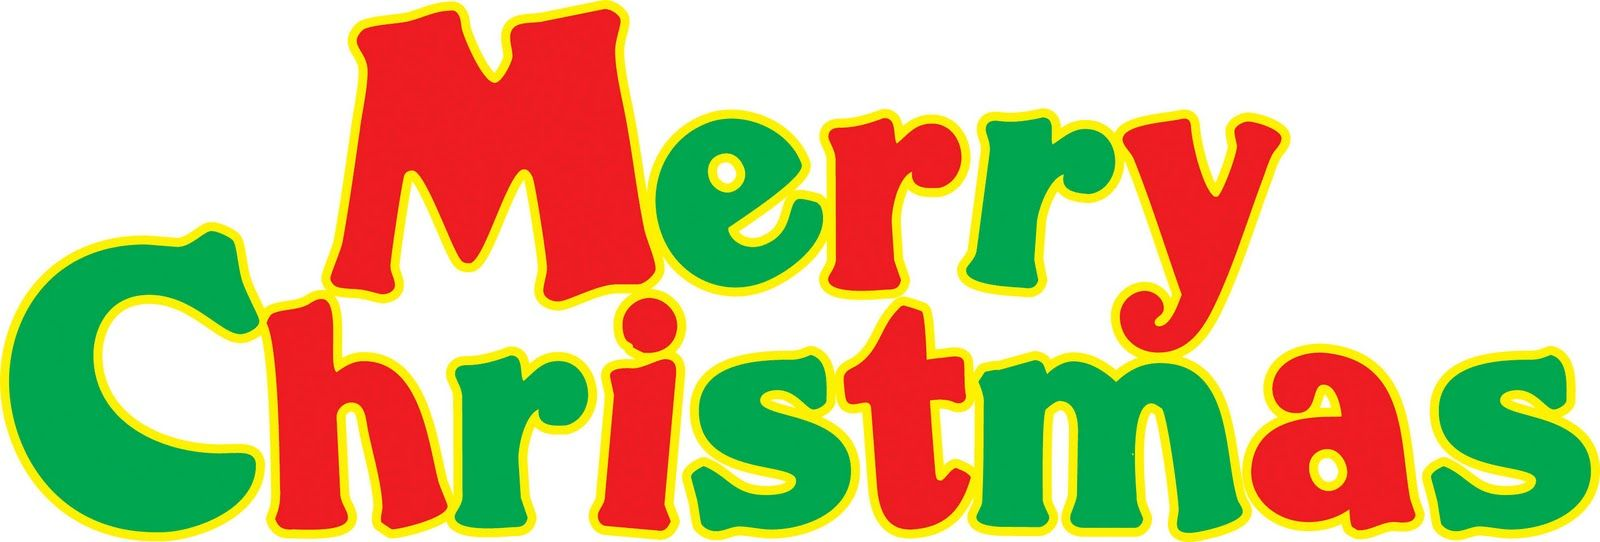 Merry Christmas Clip Art Use These Free Images For Your Websites Art Projects Reports And